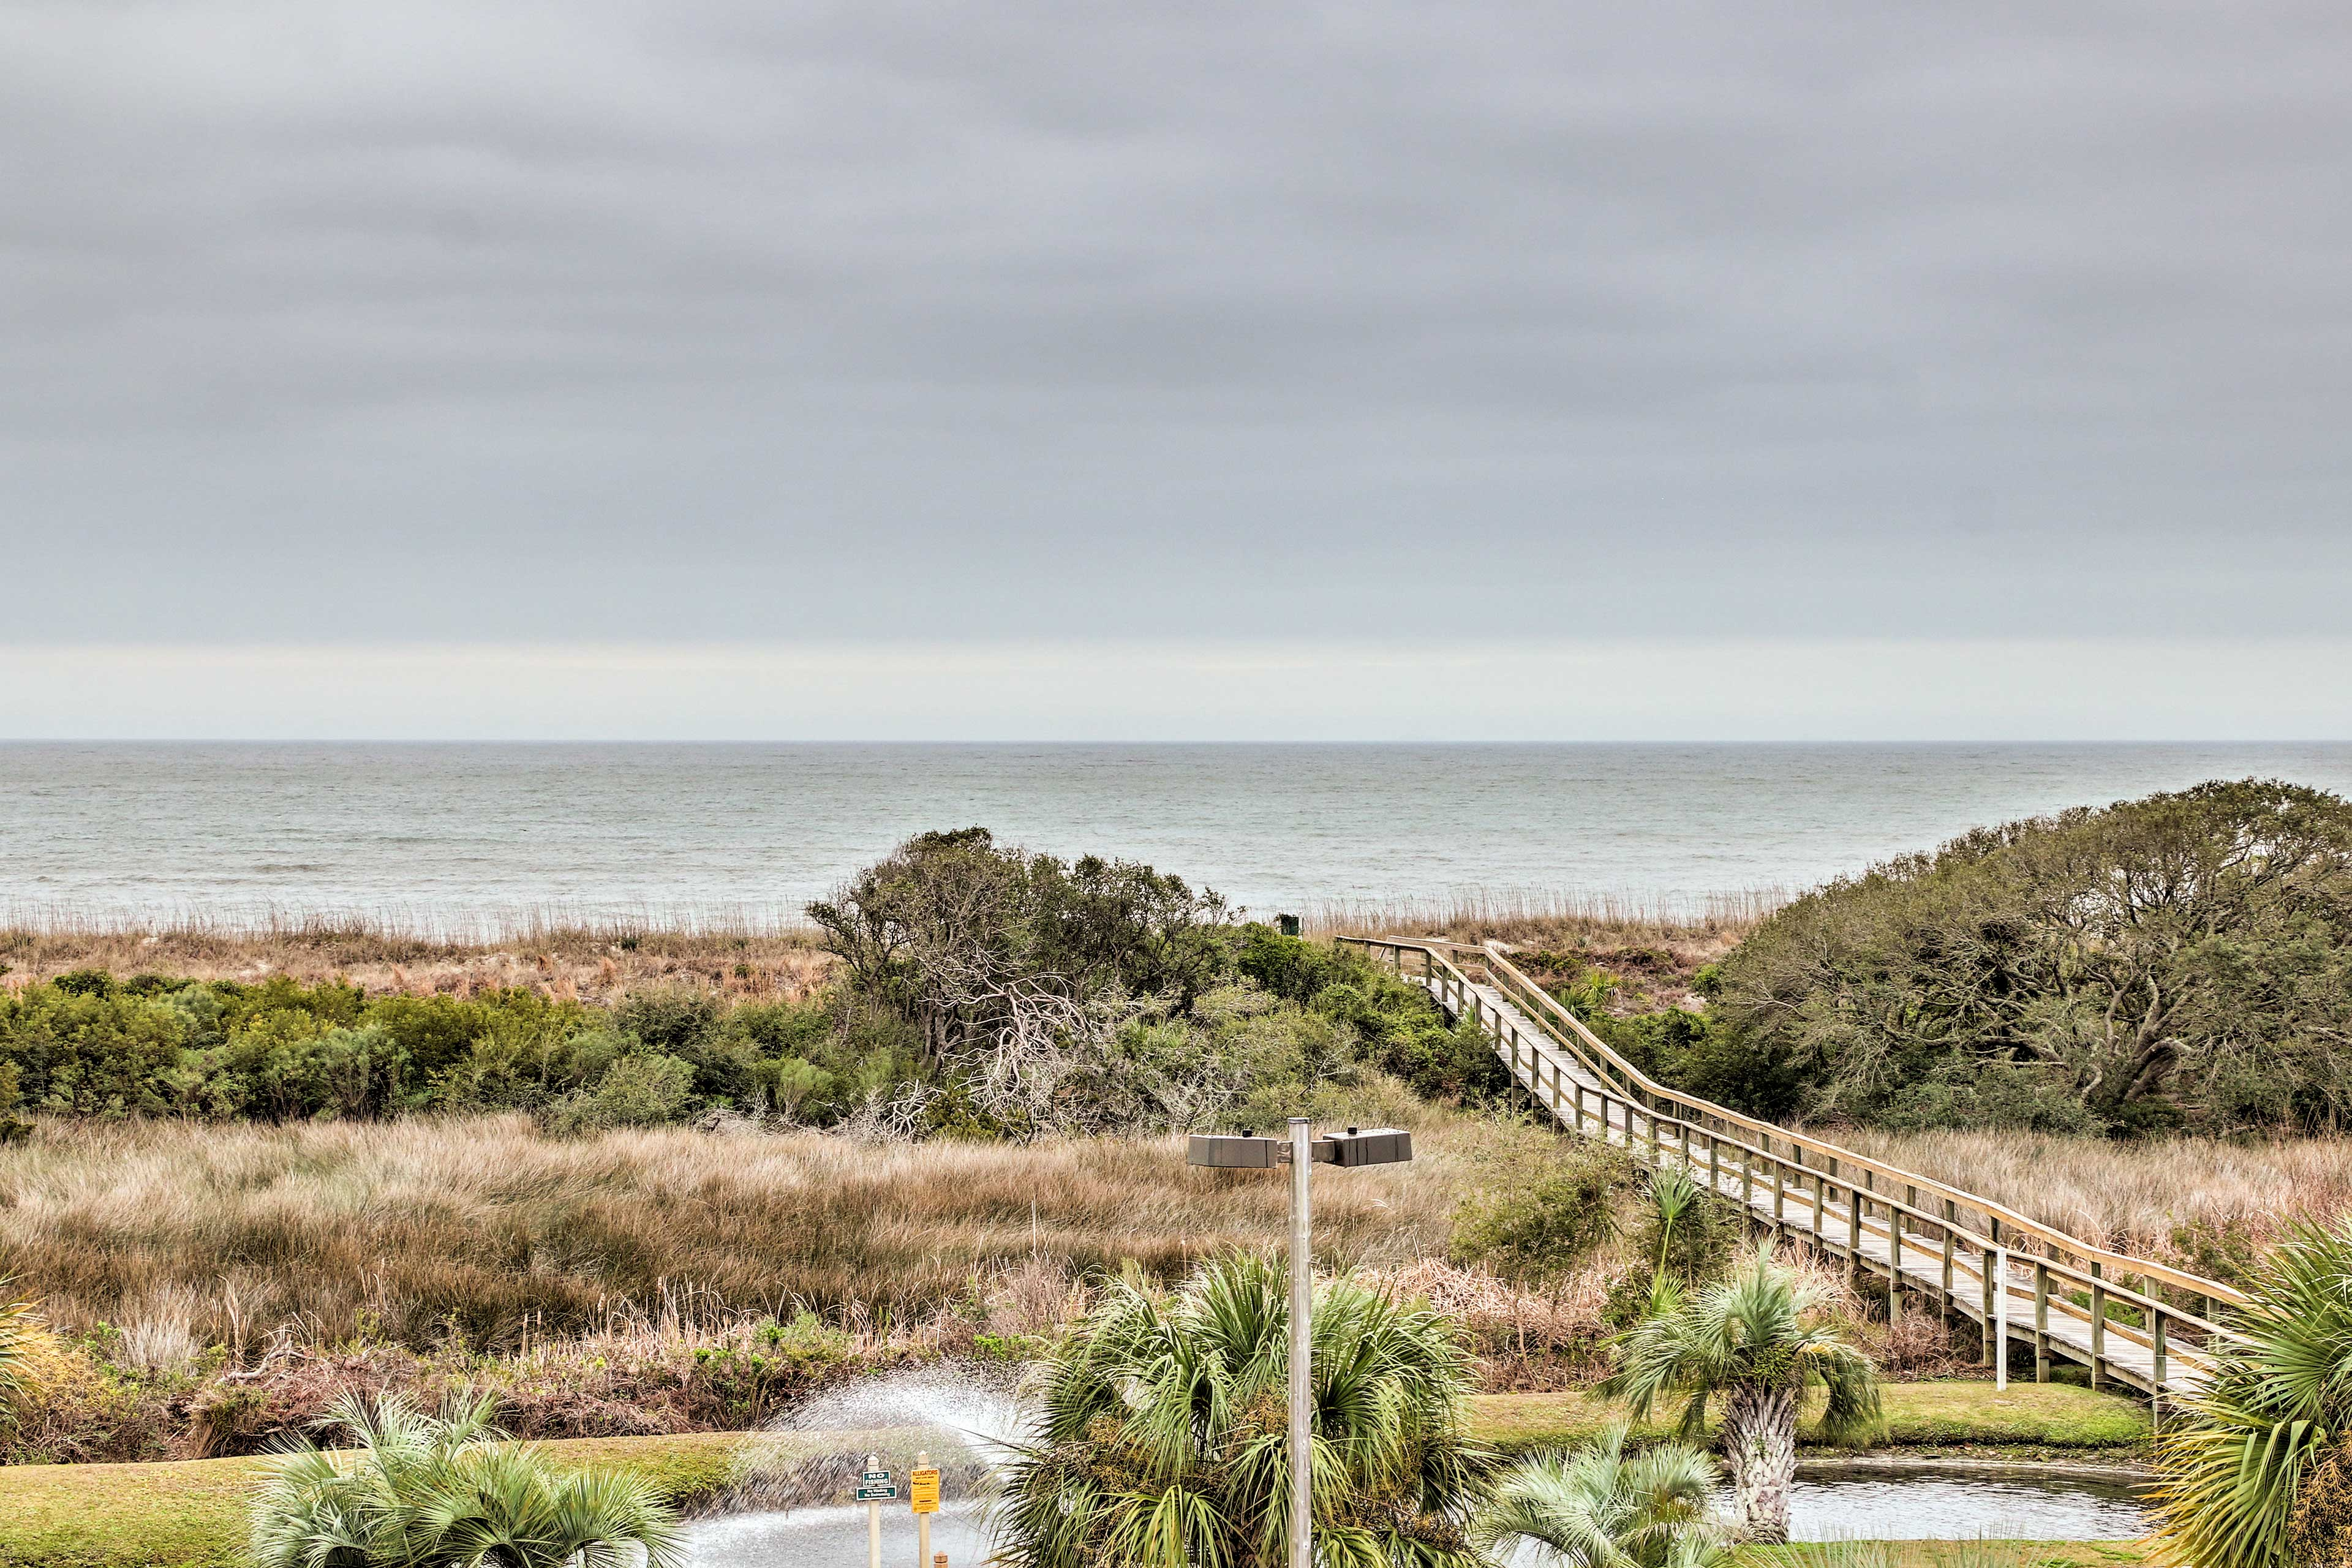 You can see the boardwalk from your condo!